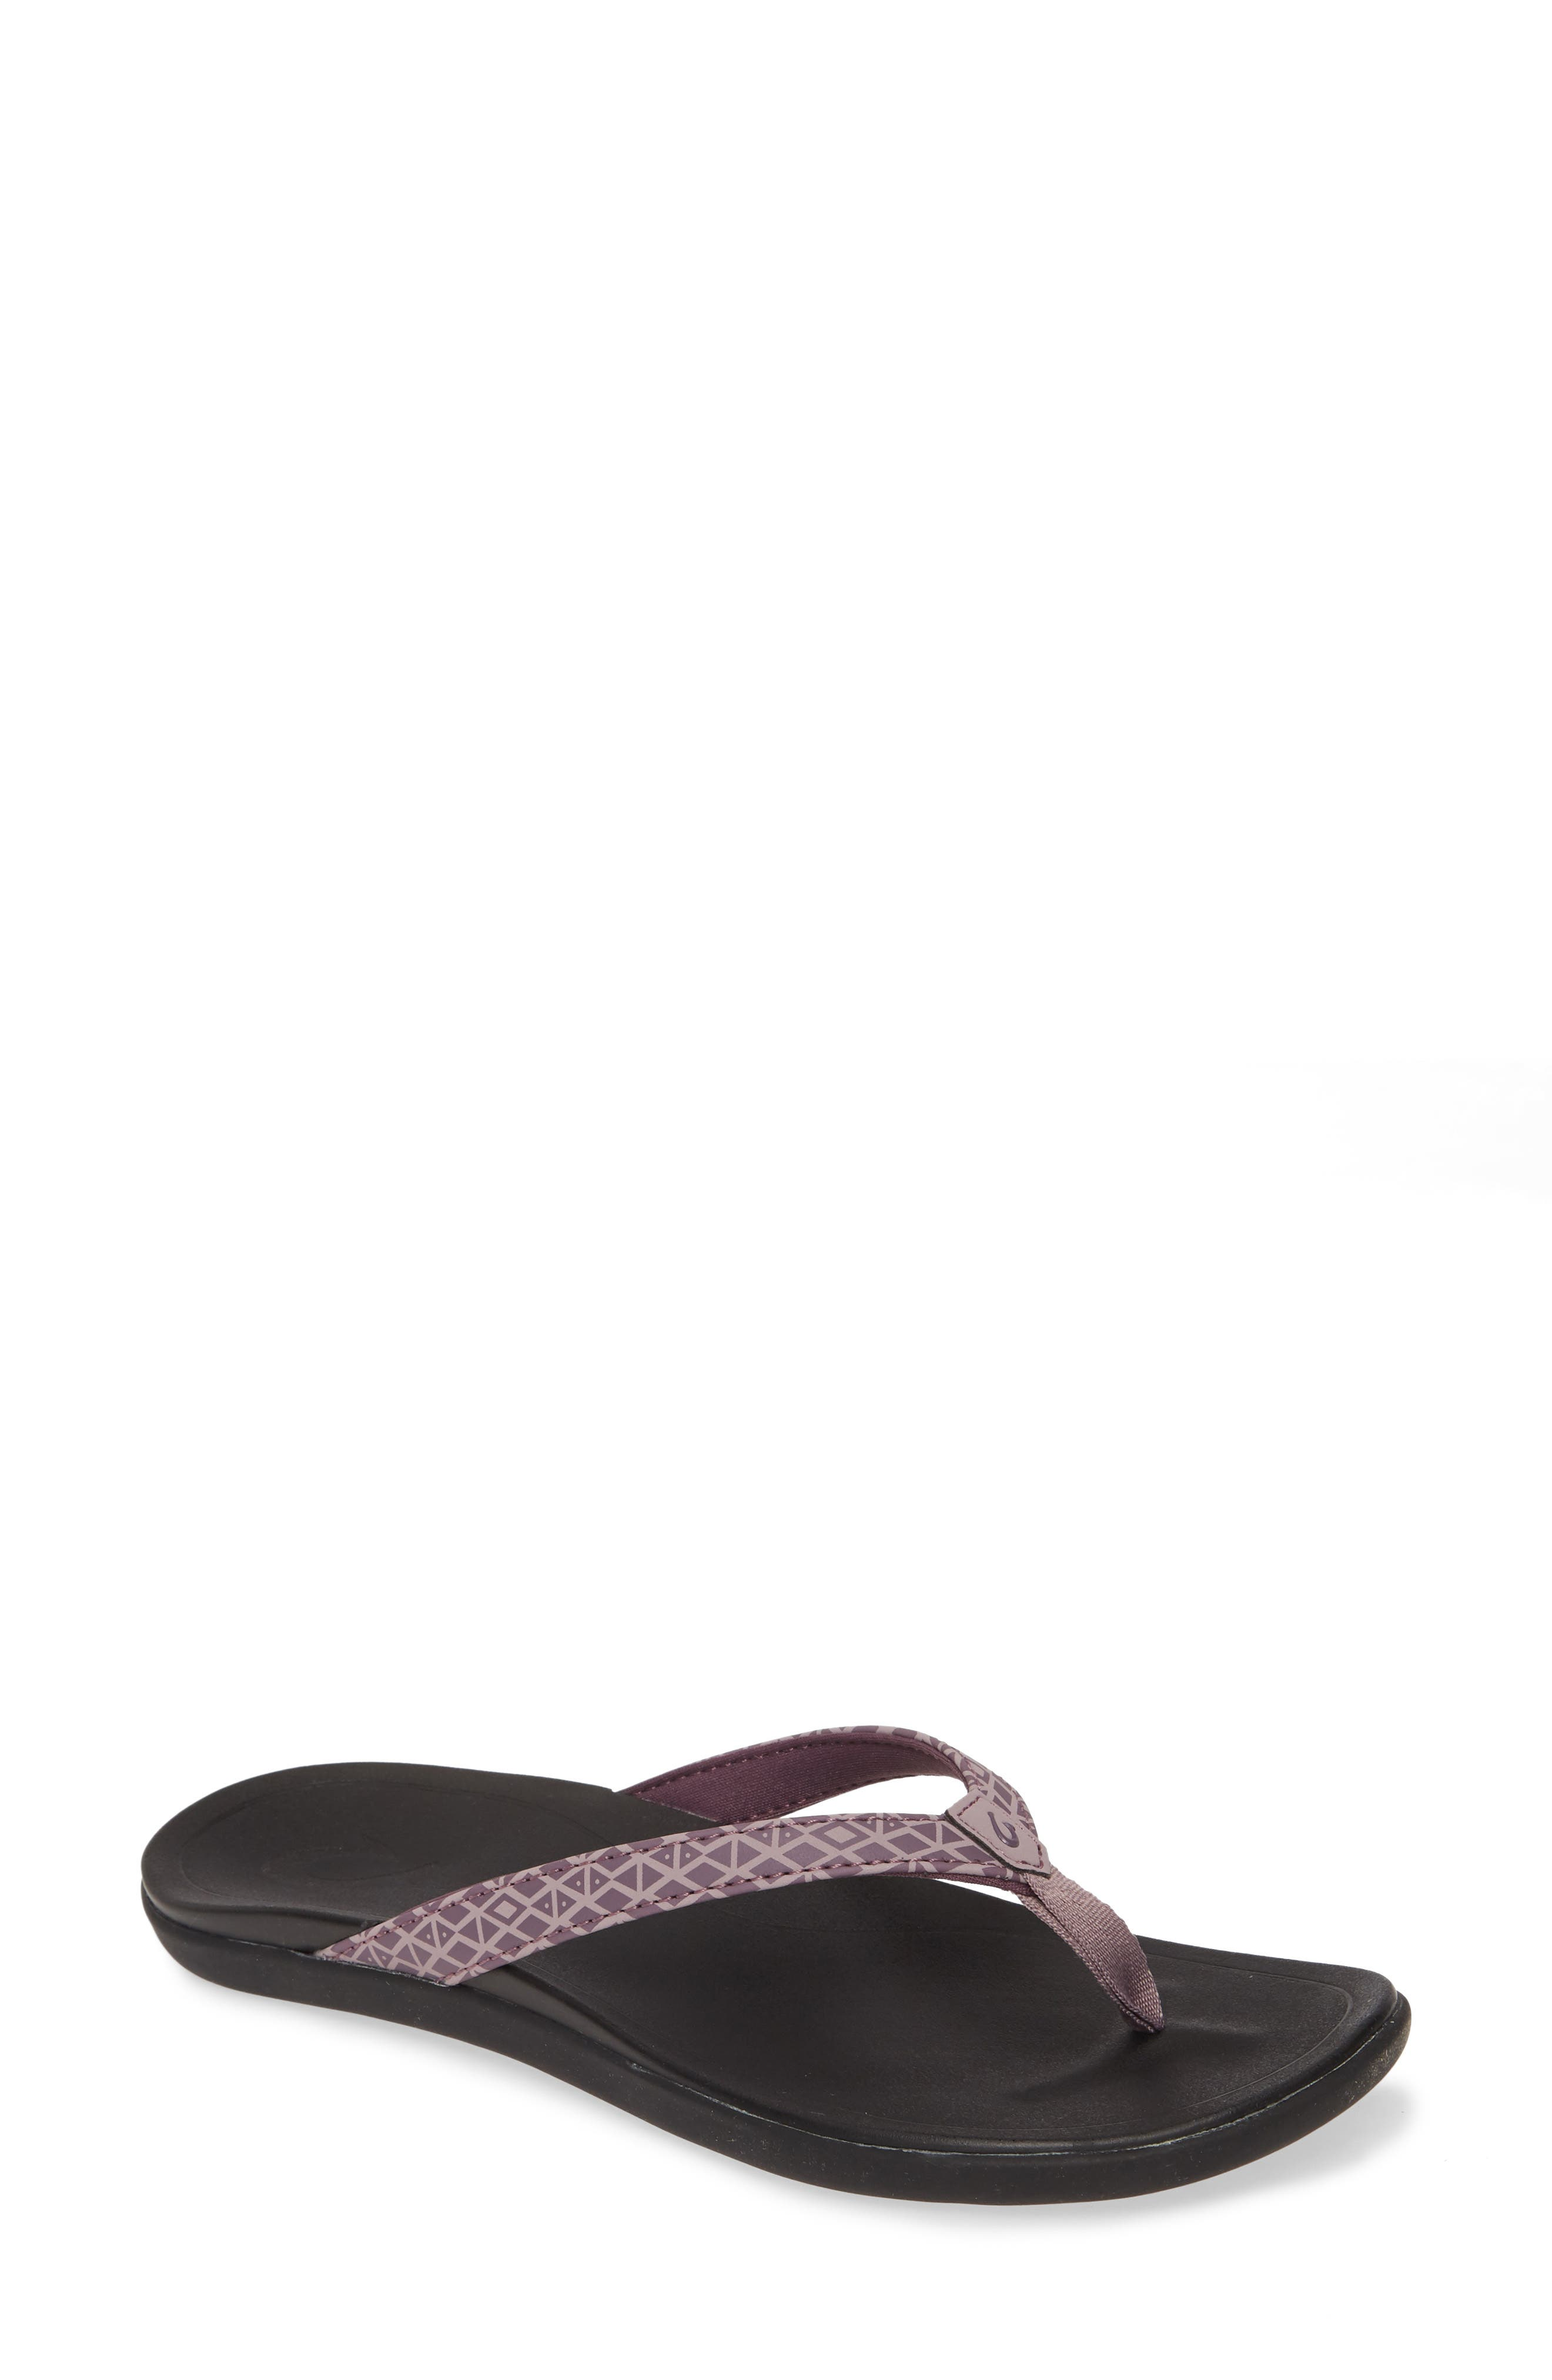 Slim, minimally styled and ready for fun on the go, these sturdy flip-flops are made with water-resistant straps, a quick-dry lining and cushy footbed. Style Name: Olukai Ho Opio Flip Flop (Women). Style Number: 5085182. Available in stores.